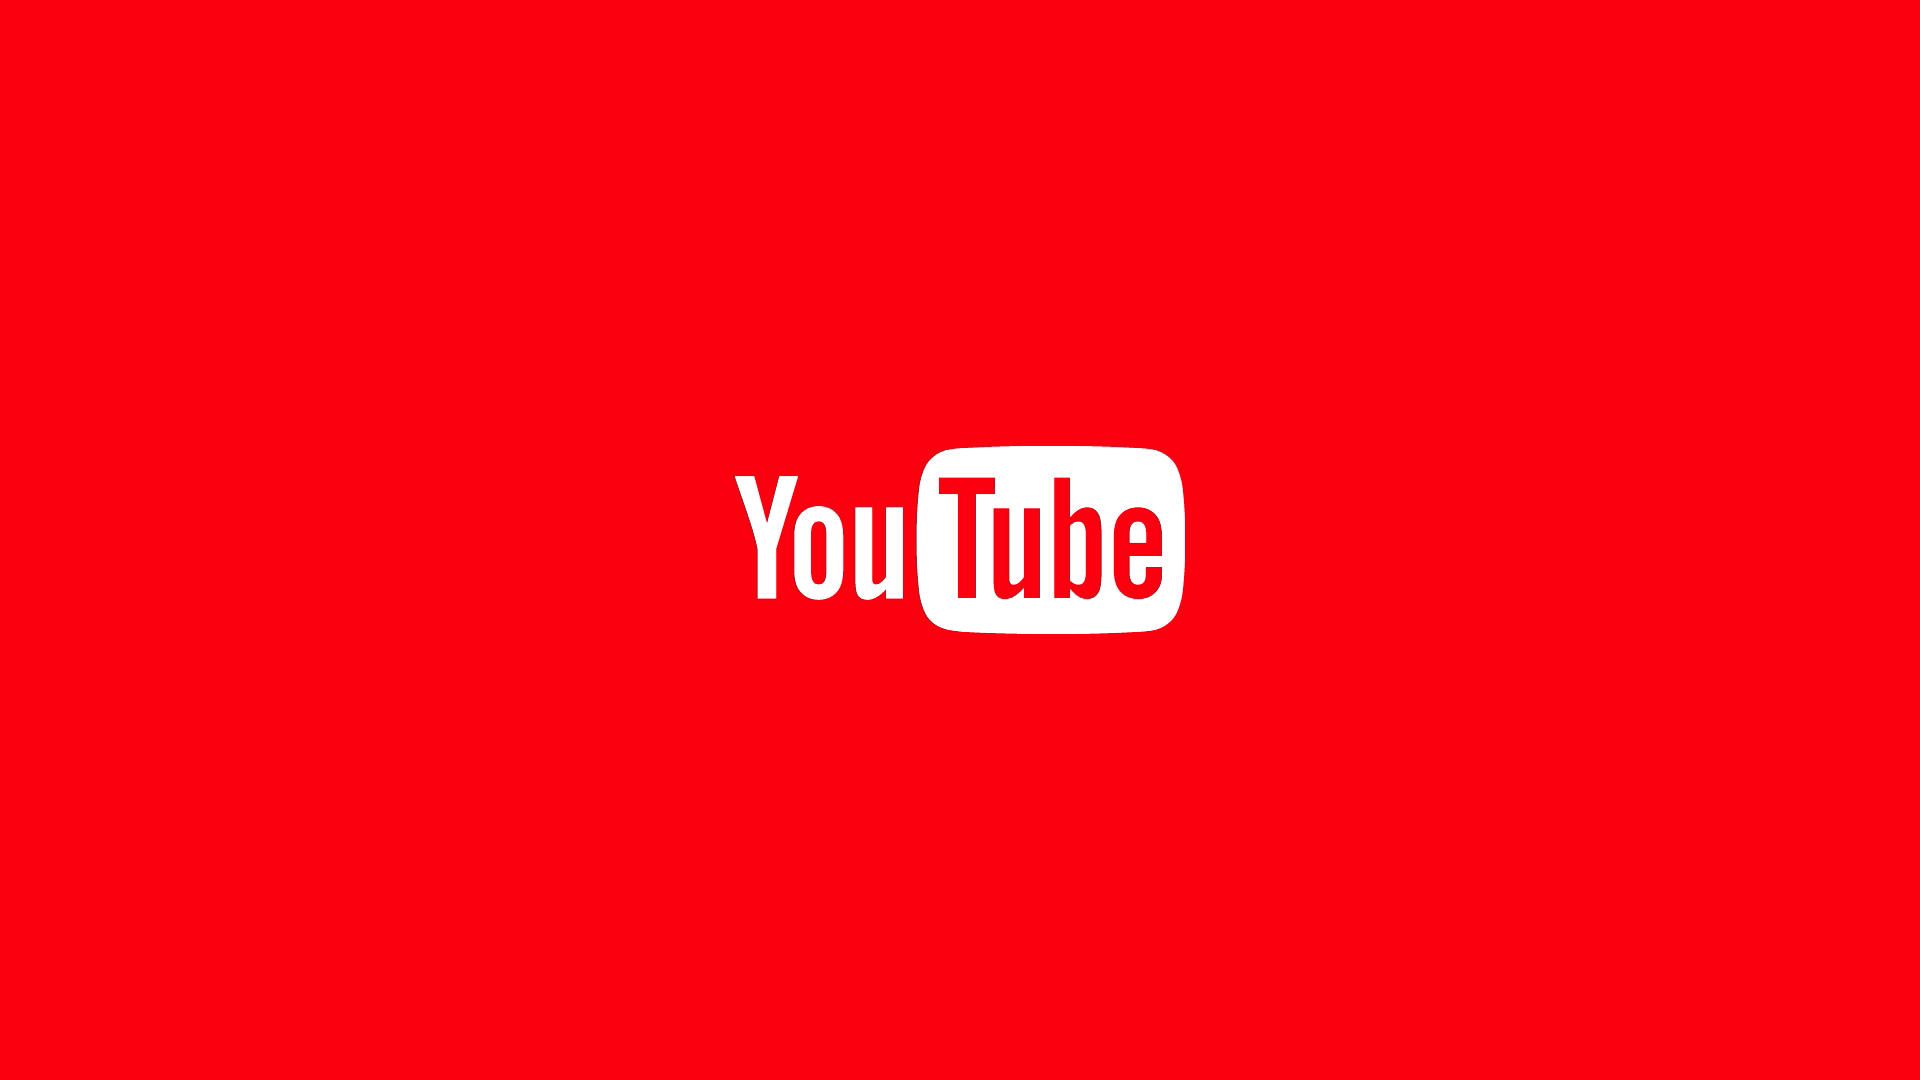 Images of Youtube | 1920x1080